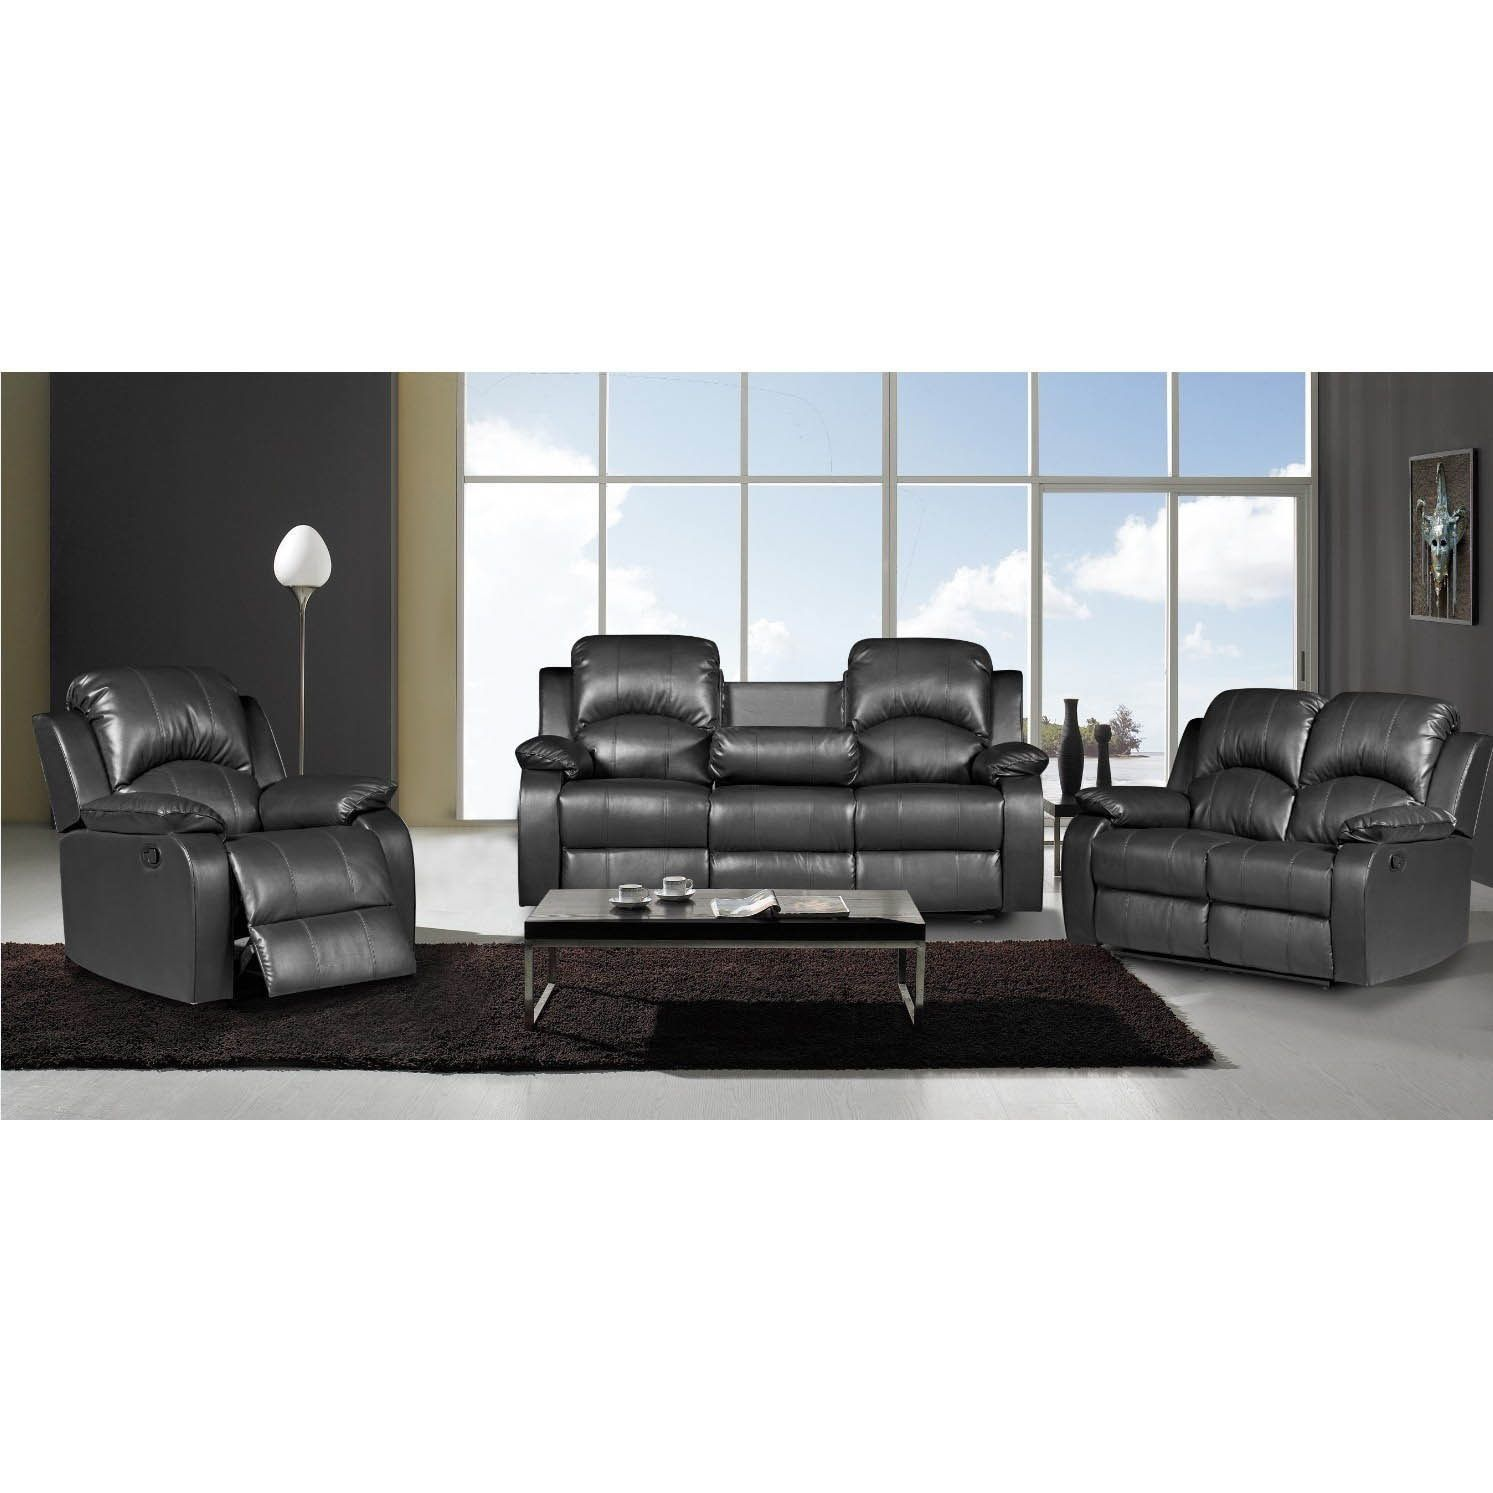 Lane Home Furnishings Leather Sofa And Loveseat From The Bowden Collection Fabric Corner Set Designs Us Pride Furniture Nadia 3 Piece Bonded Recliner Black